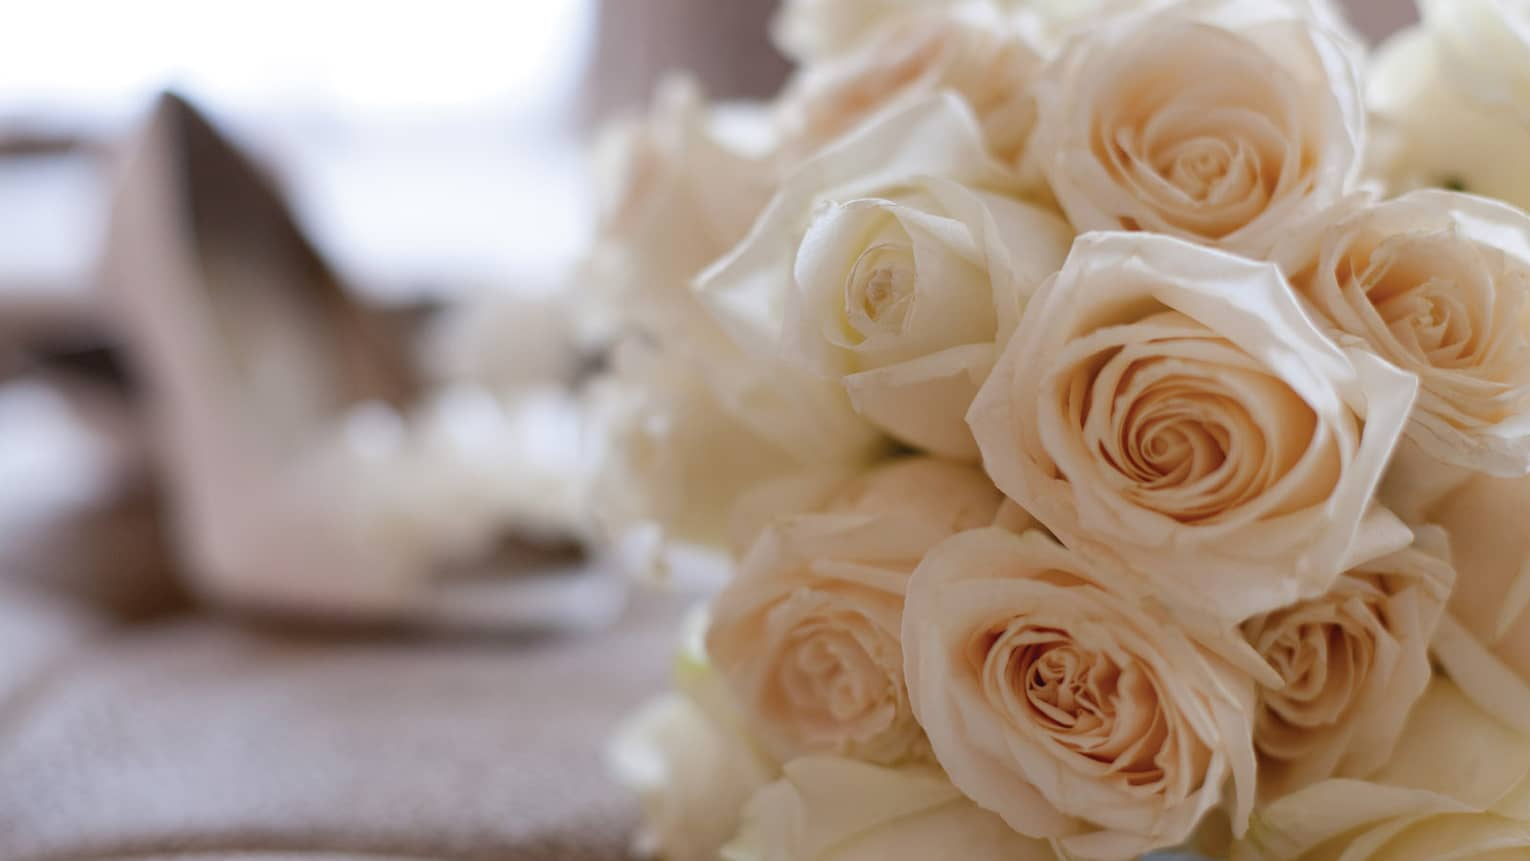 Bouquet of light pink roses, high heeled shoe in background